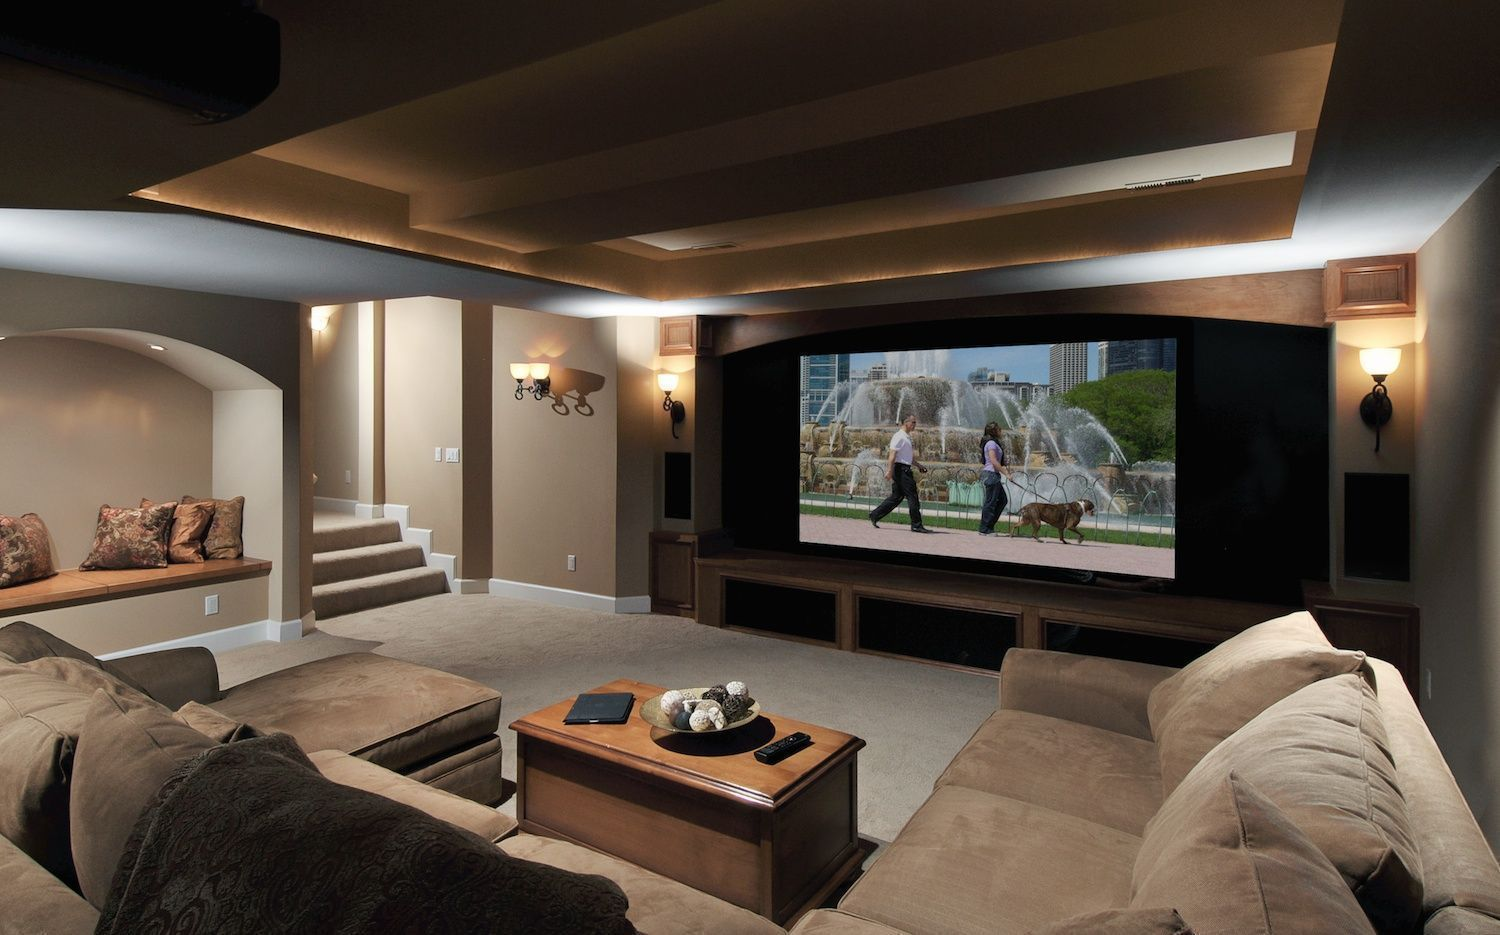 More Ideas Below Diy Home Theater Decorations Ideas Basement Home Amusing Living Room Home Theater Ideas Design Decoration